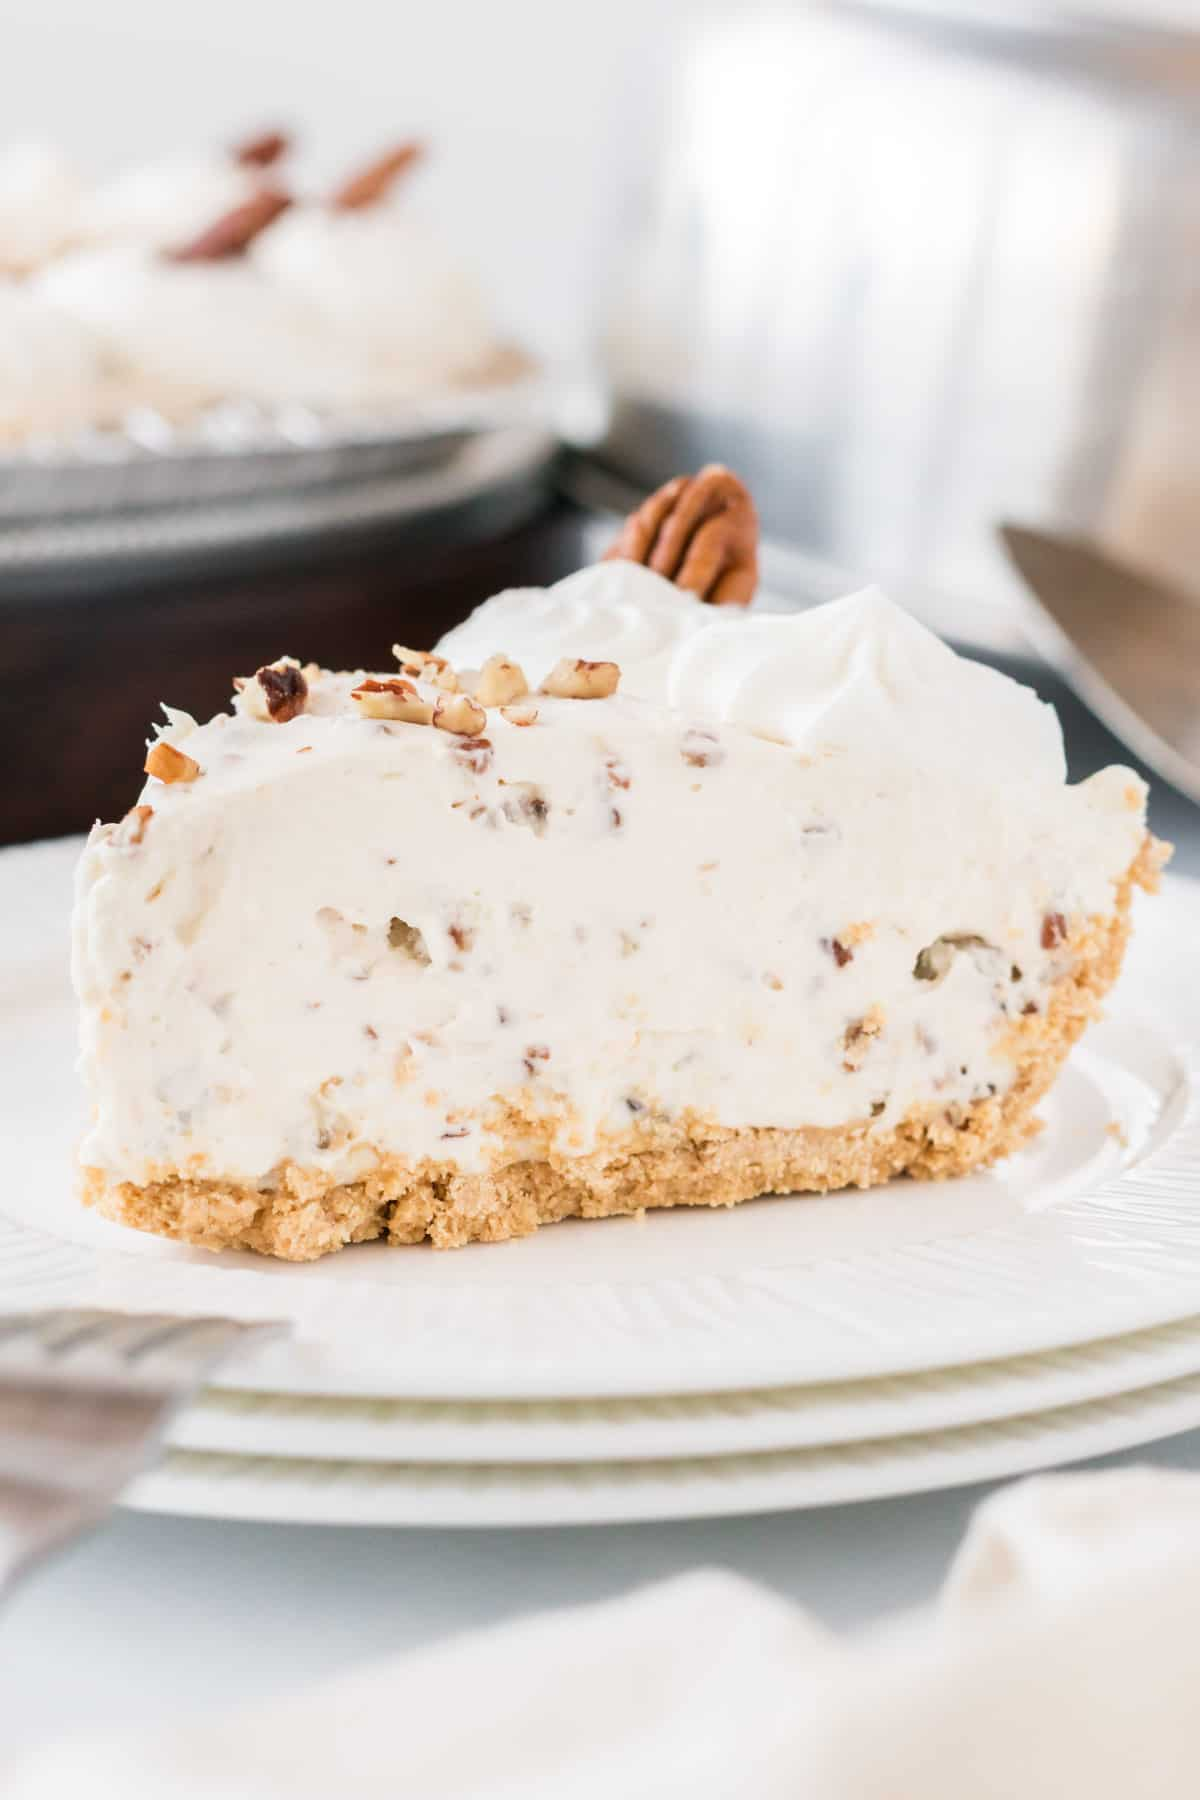 a slice of pecan cream pie on a white plate